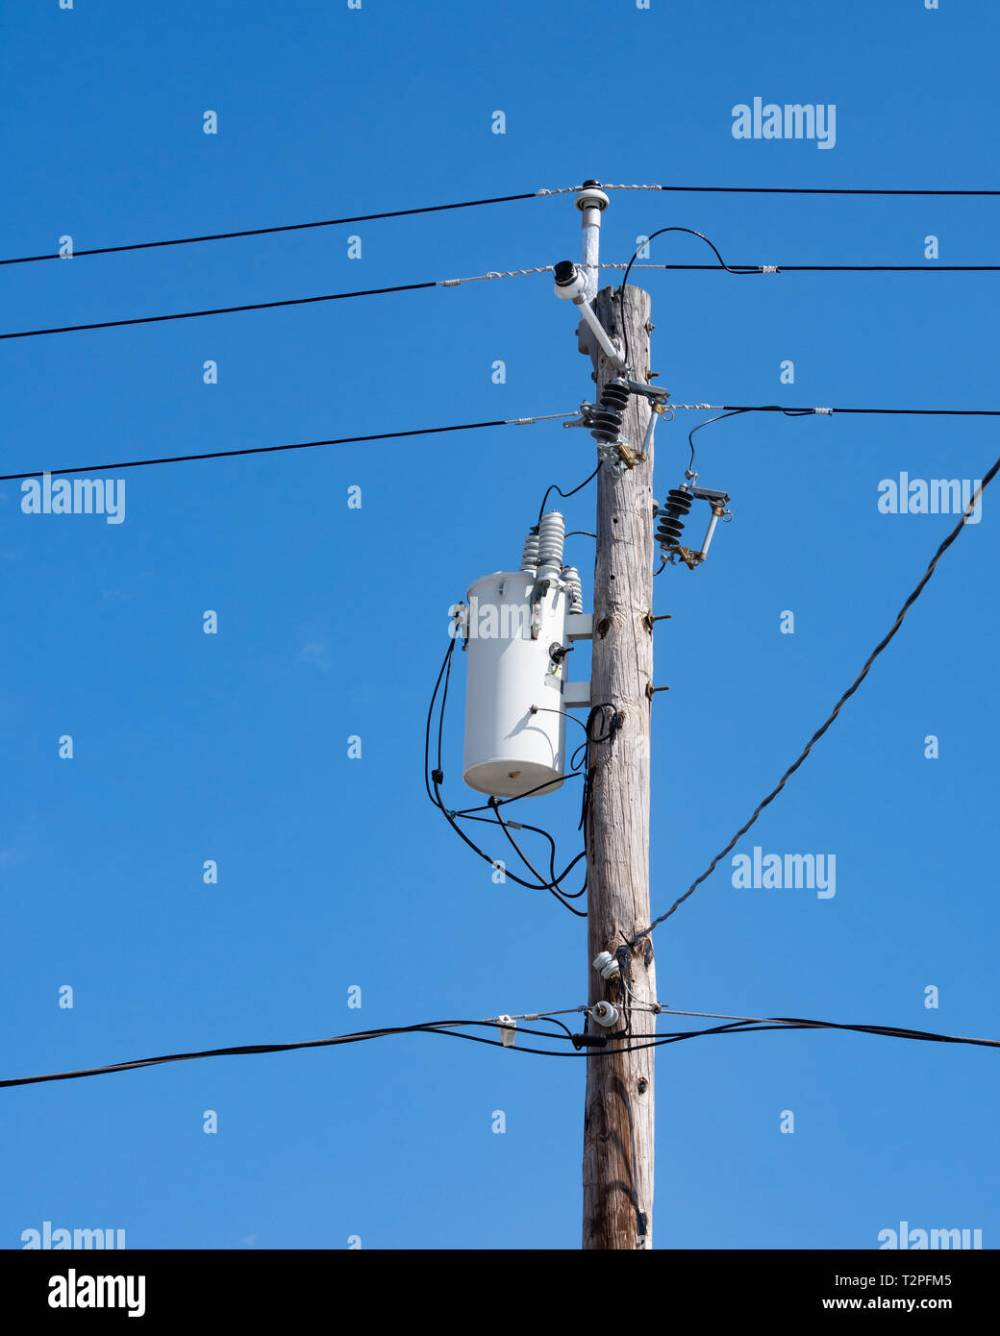 medium resolution of an electric transformer and transmission wires cable tv and telephone wires attached to an old wooden power pole with a deep blue sky background